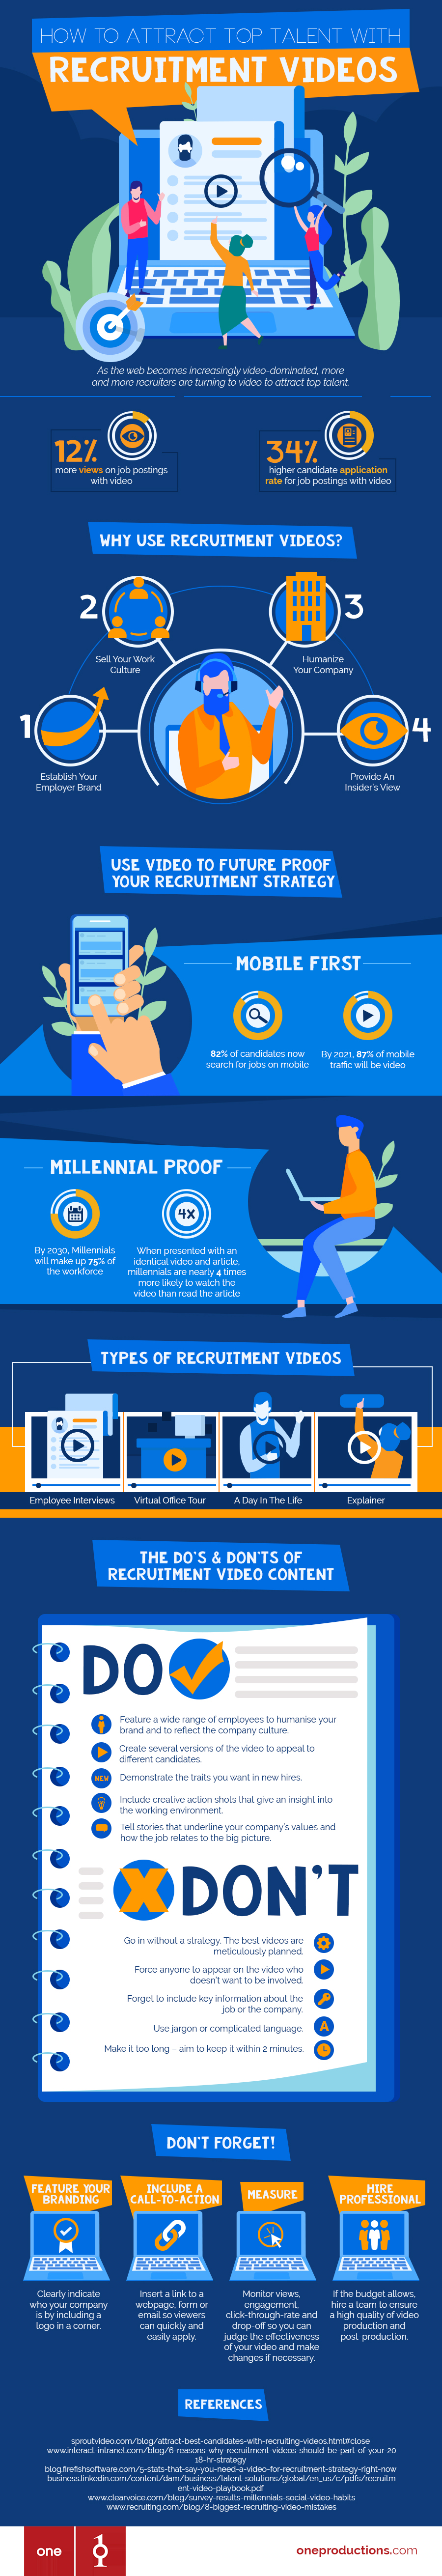 recruitment videos infographic